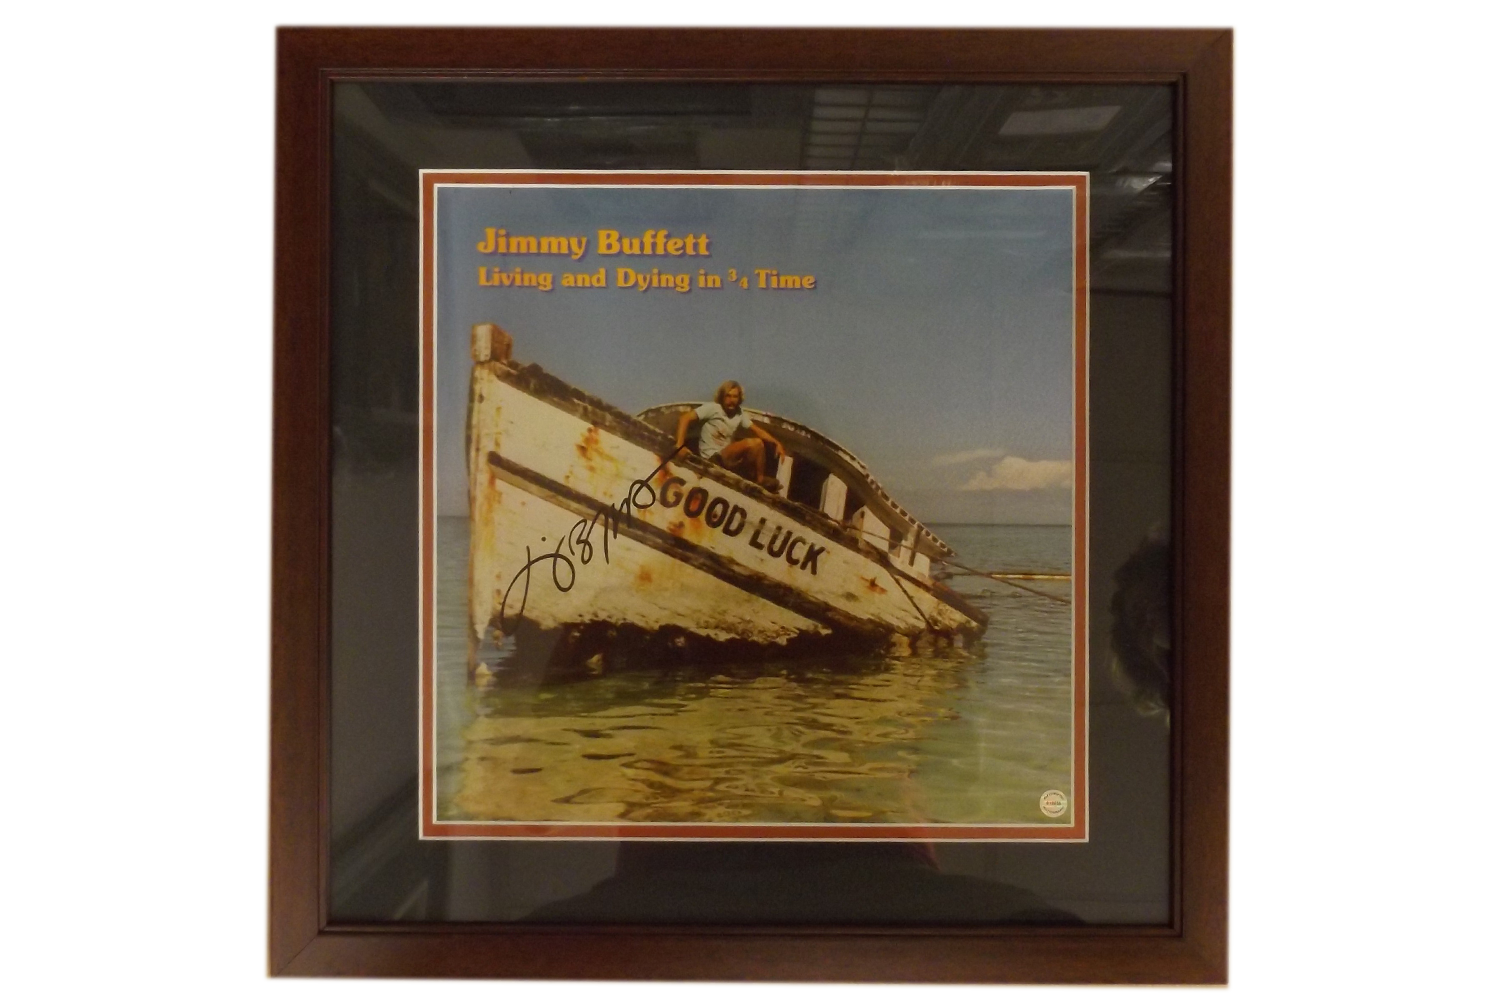 Jimmy Buffet - Living and Dying